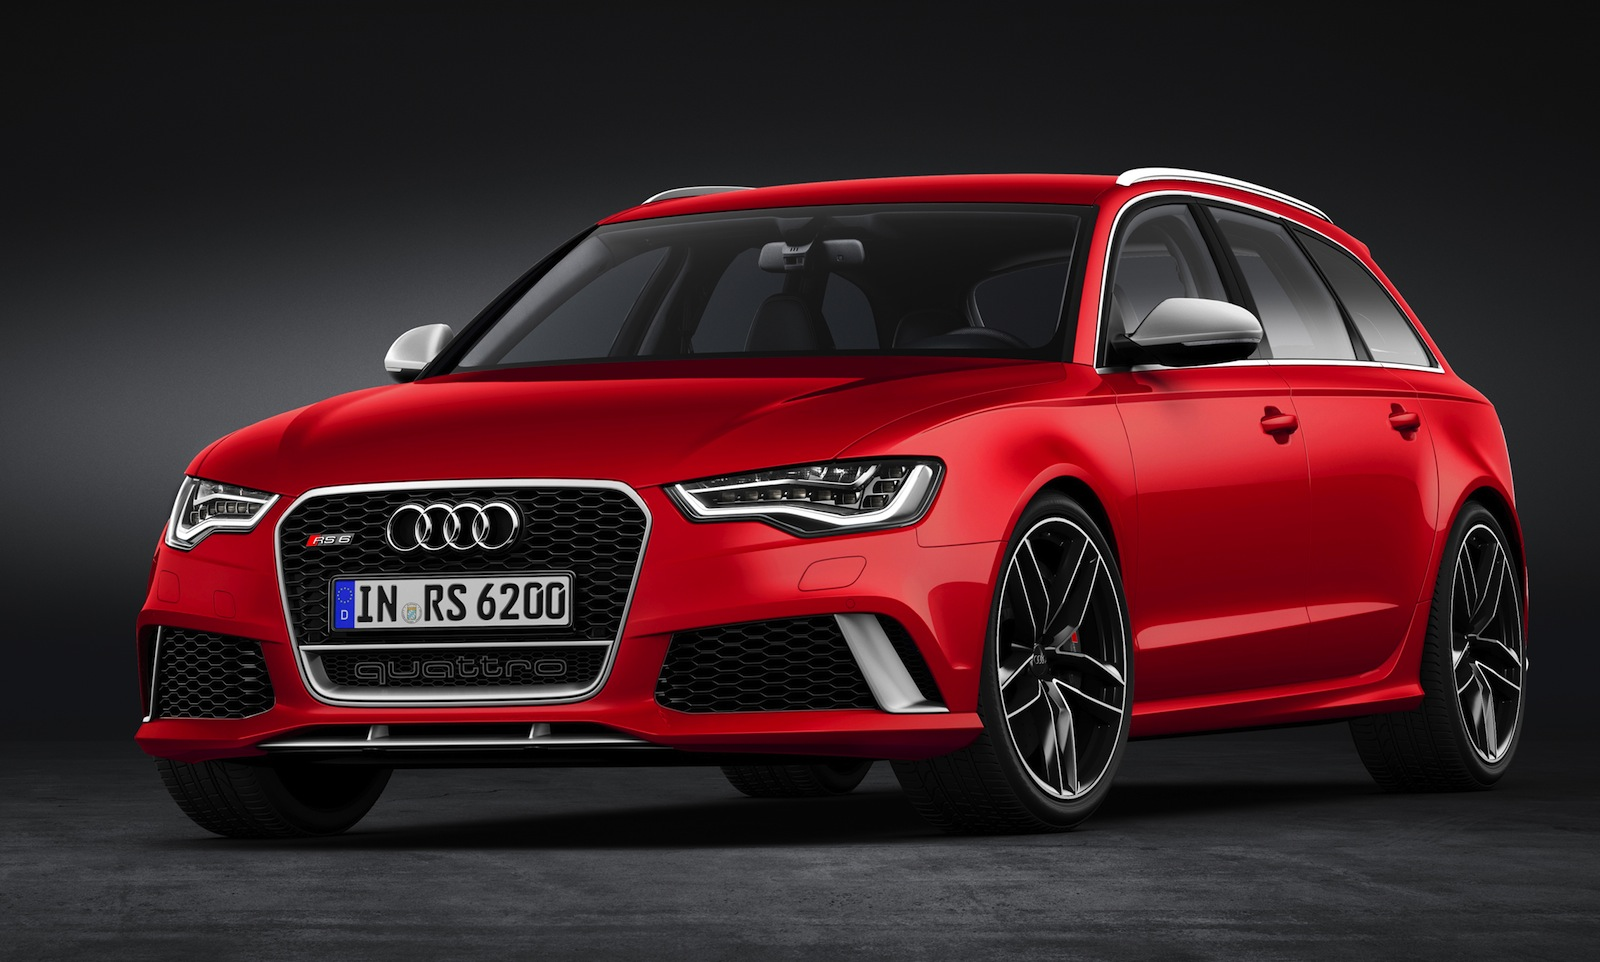 2013 audi rs6 avant 400kw wagon revealed photos 1 of 8. Black Bedroom Furniture Sets. Home Design Ideas